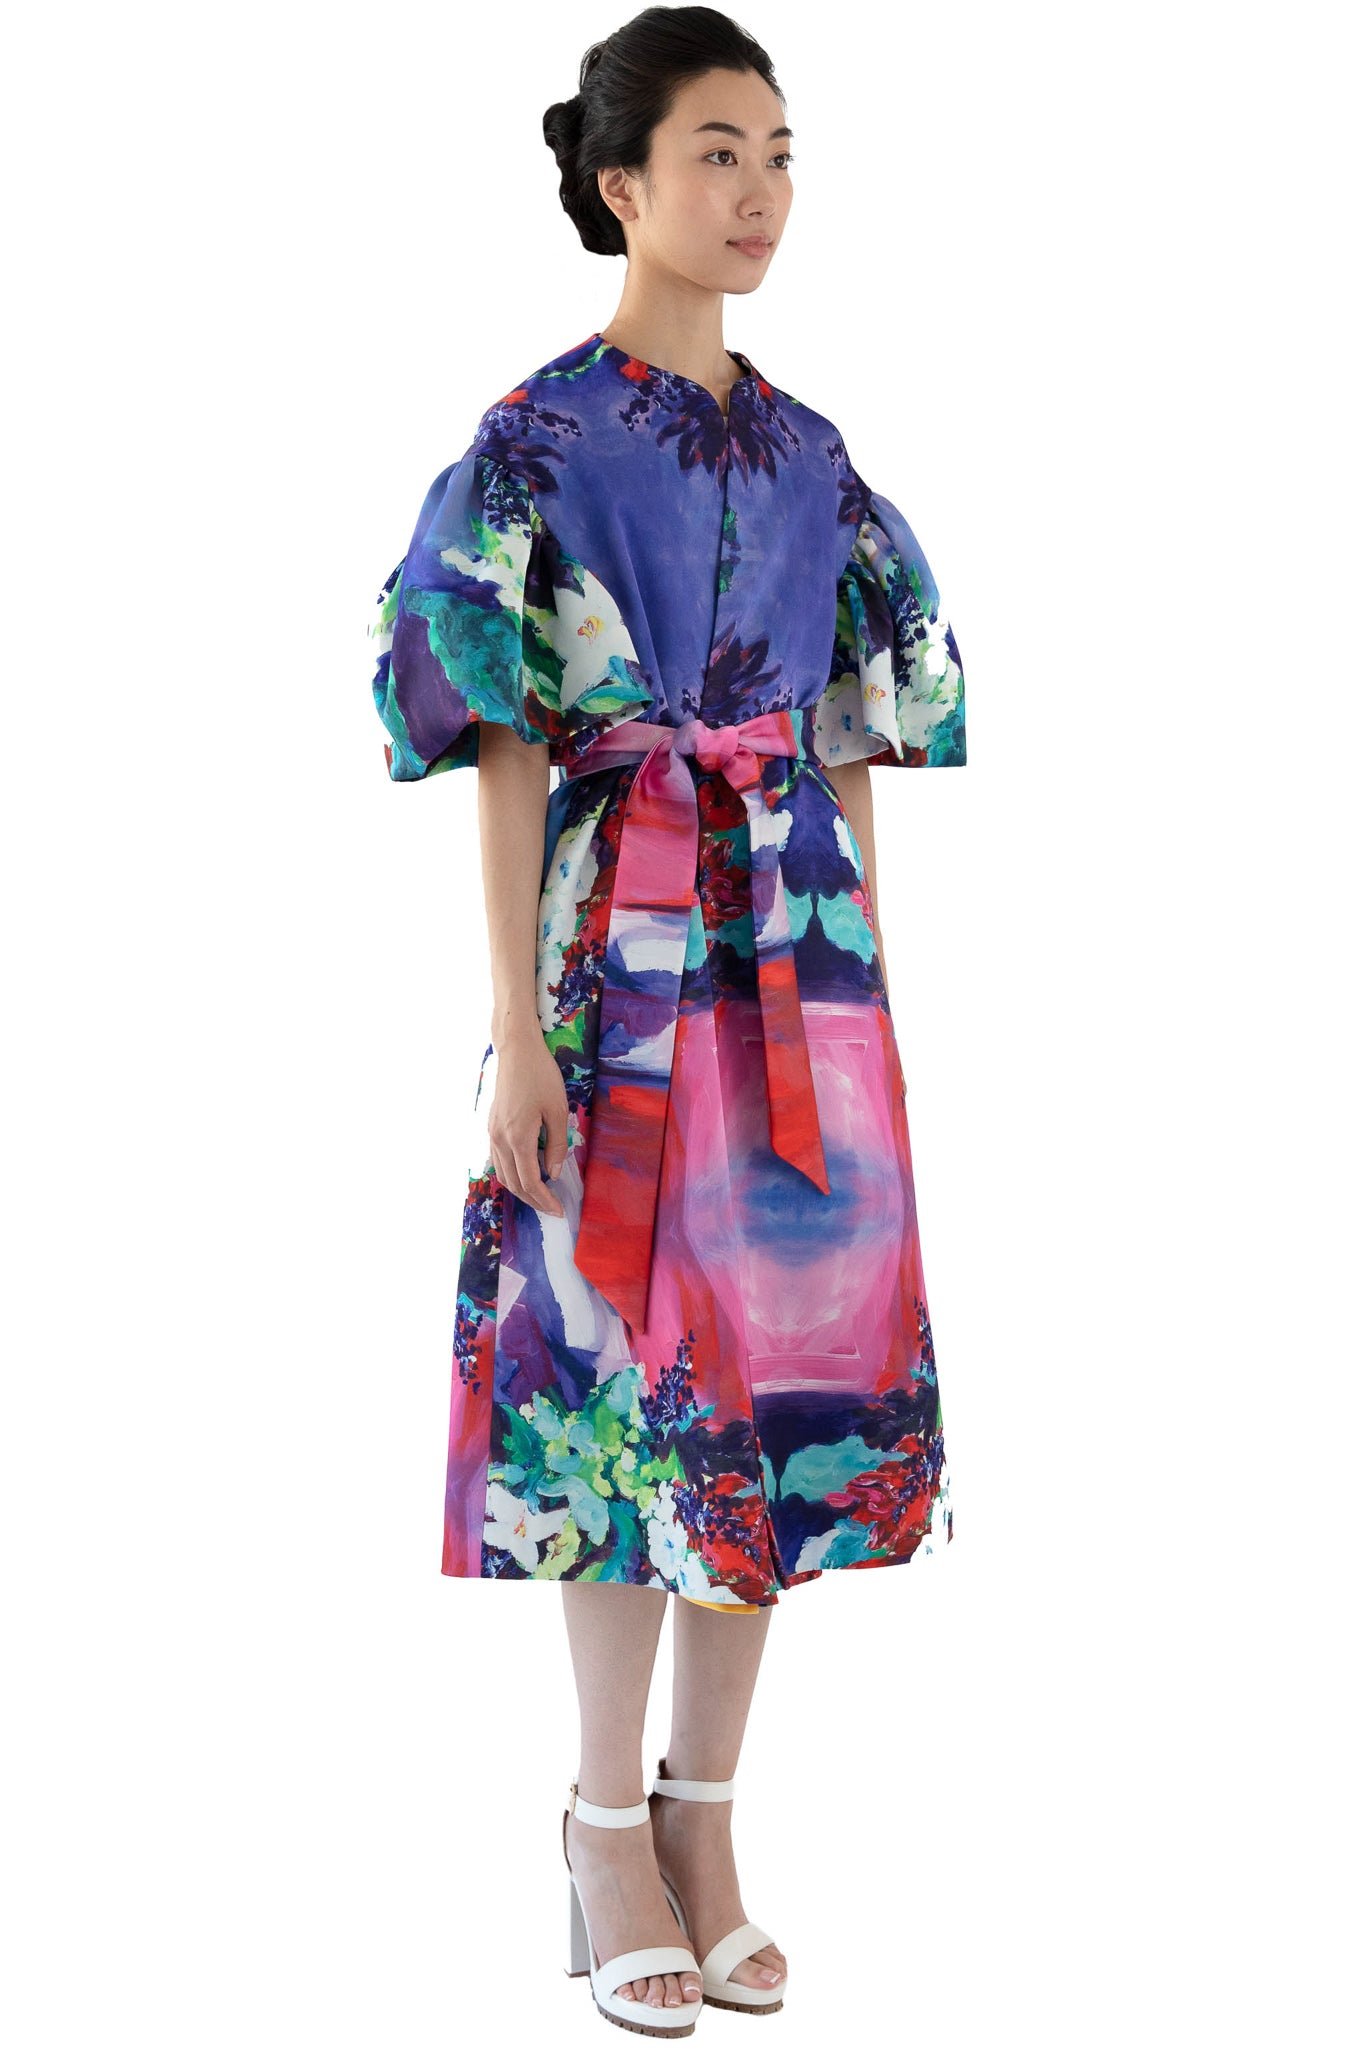 Women's floral print opera coat with belt